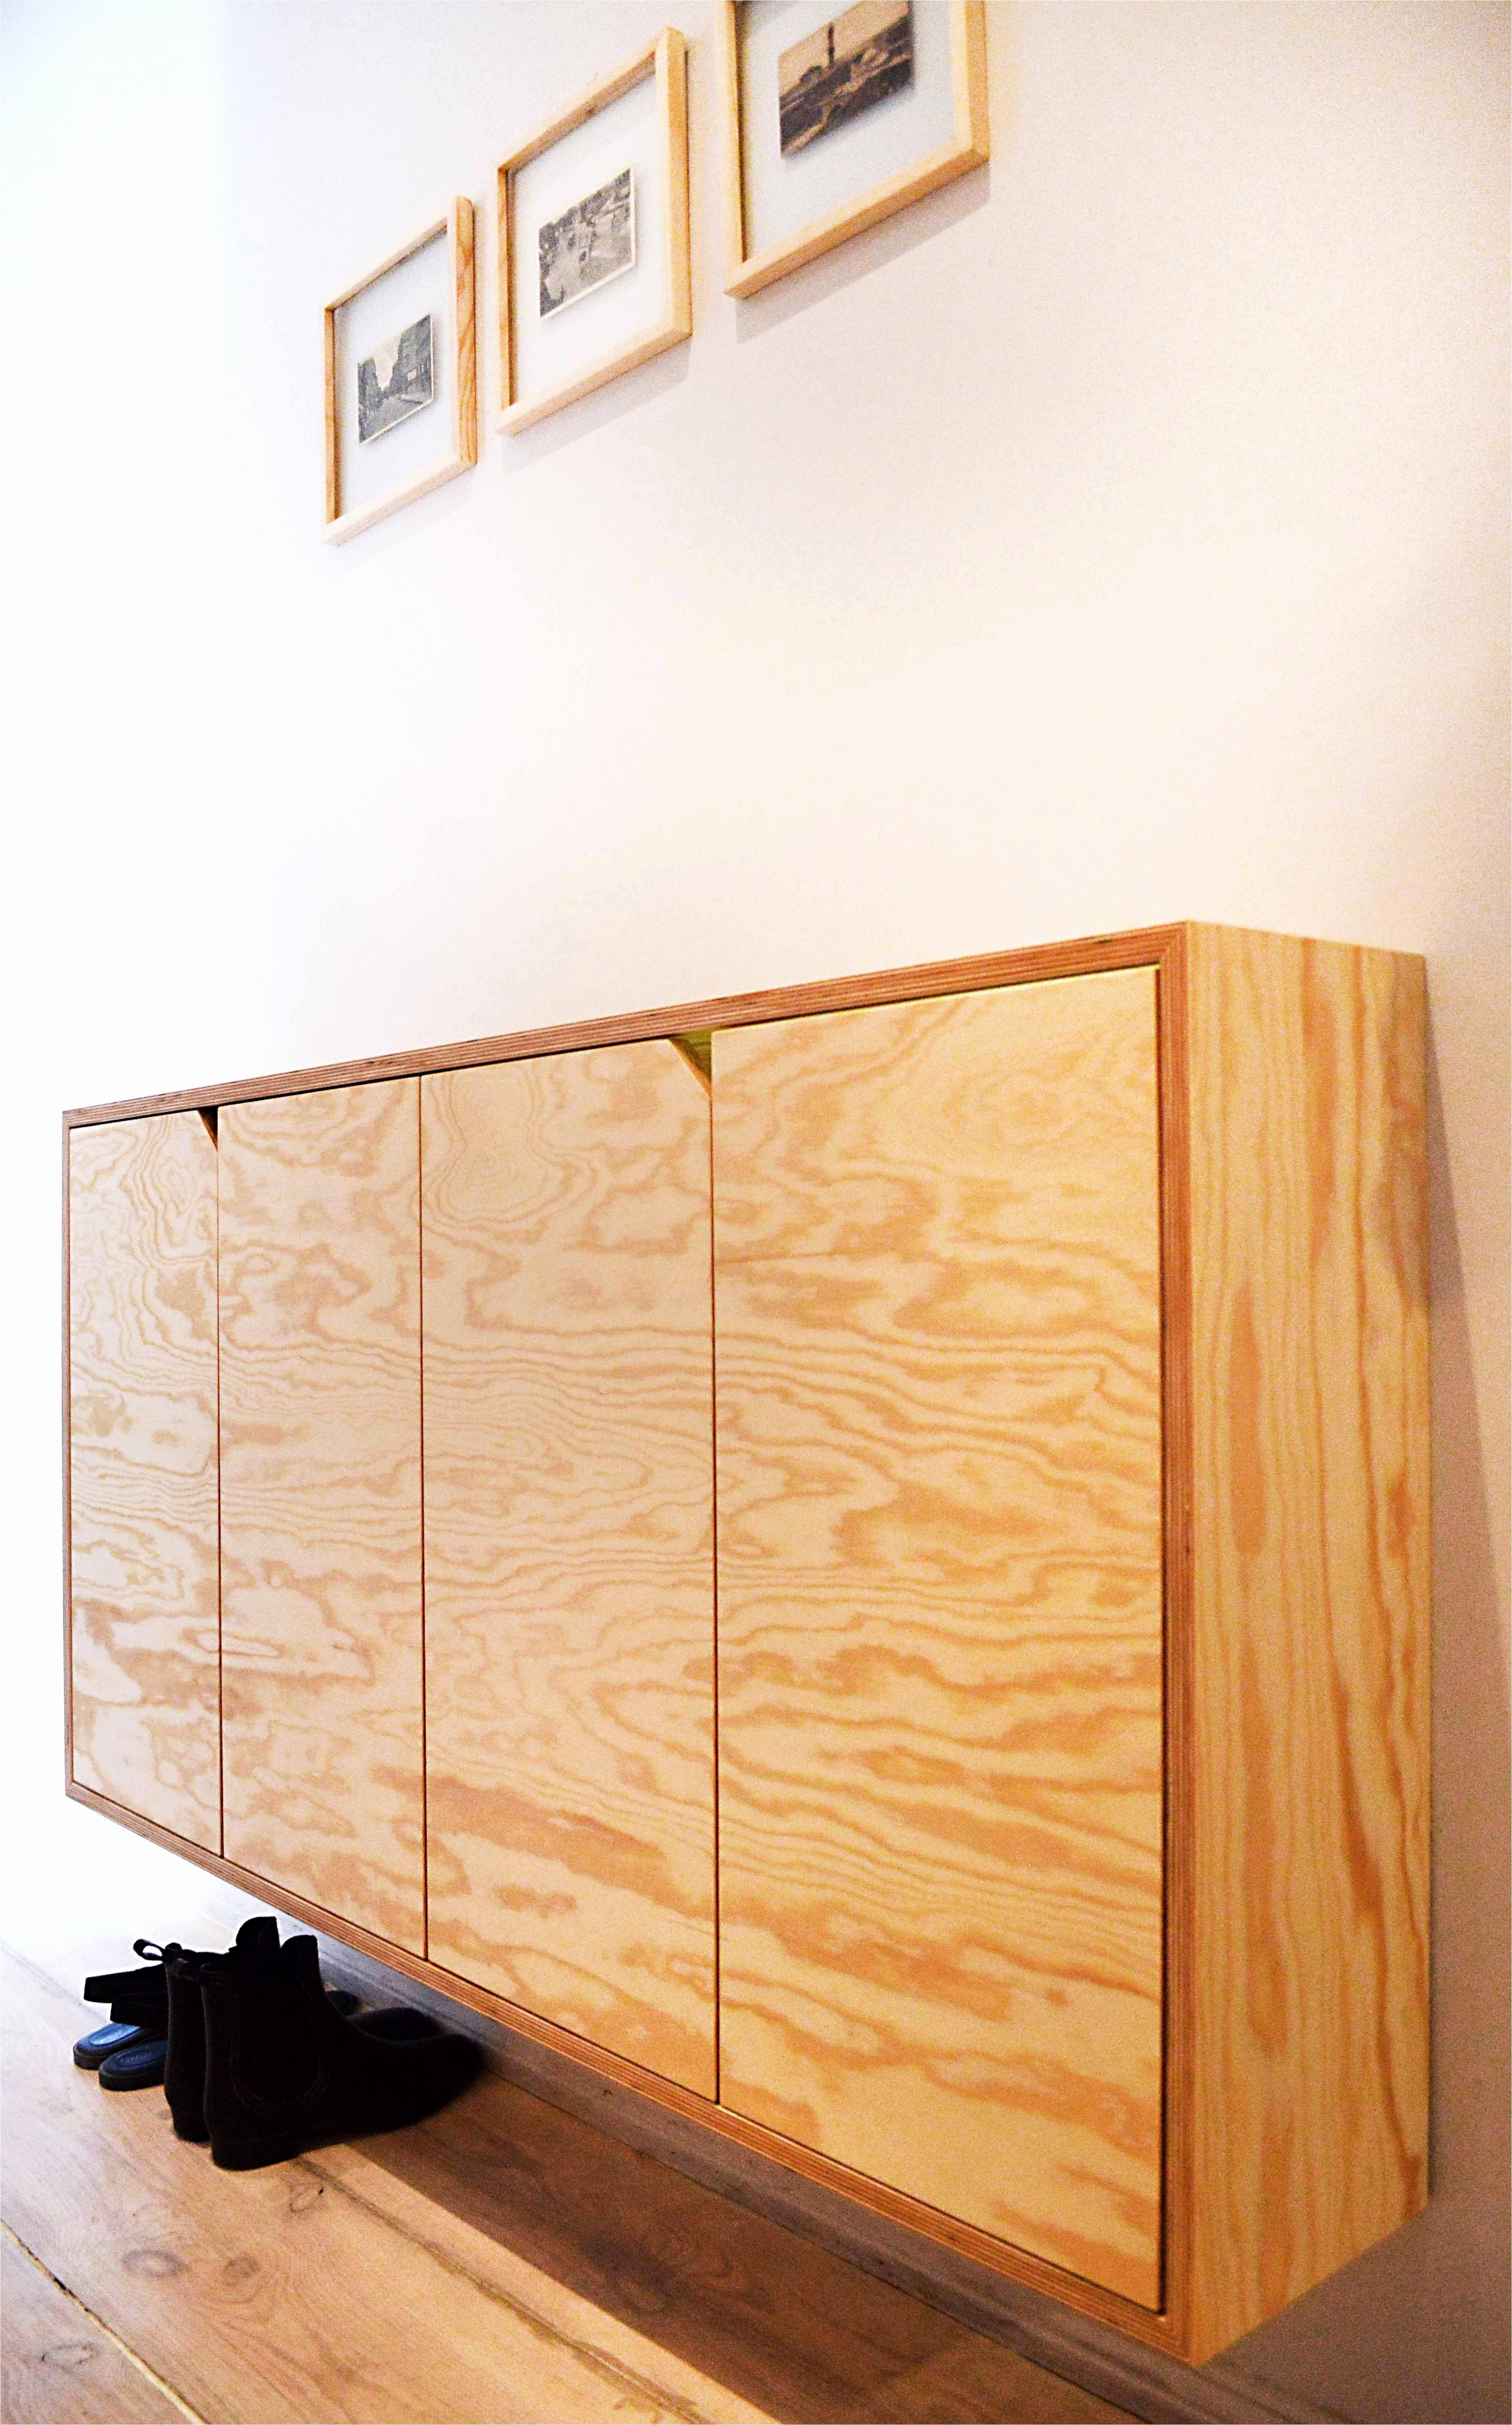 Cabinet Makers San Jose 2020 In 2020 Plywood Furniture Plywood Kitchen Plywood Design